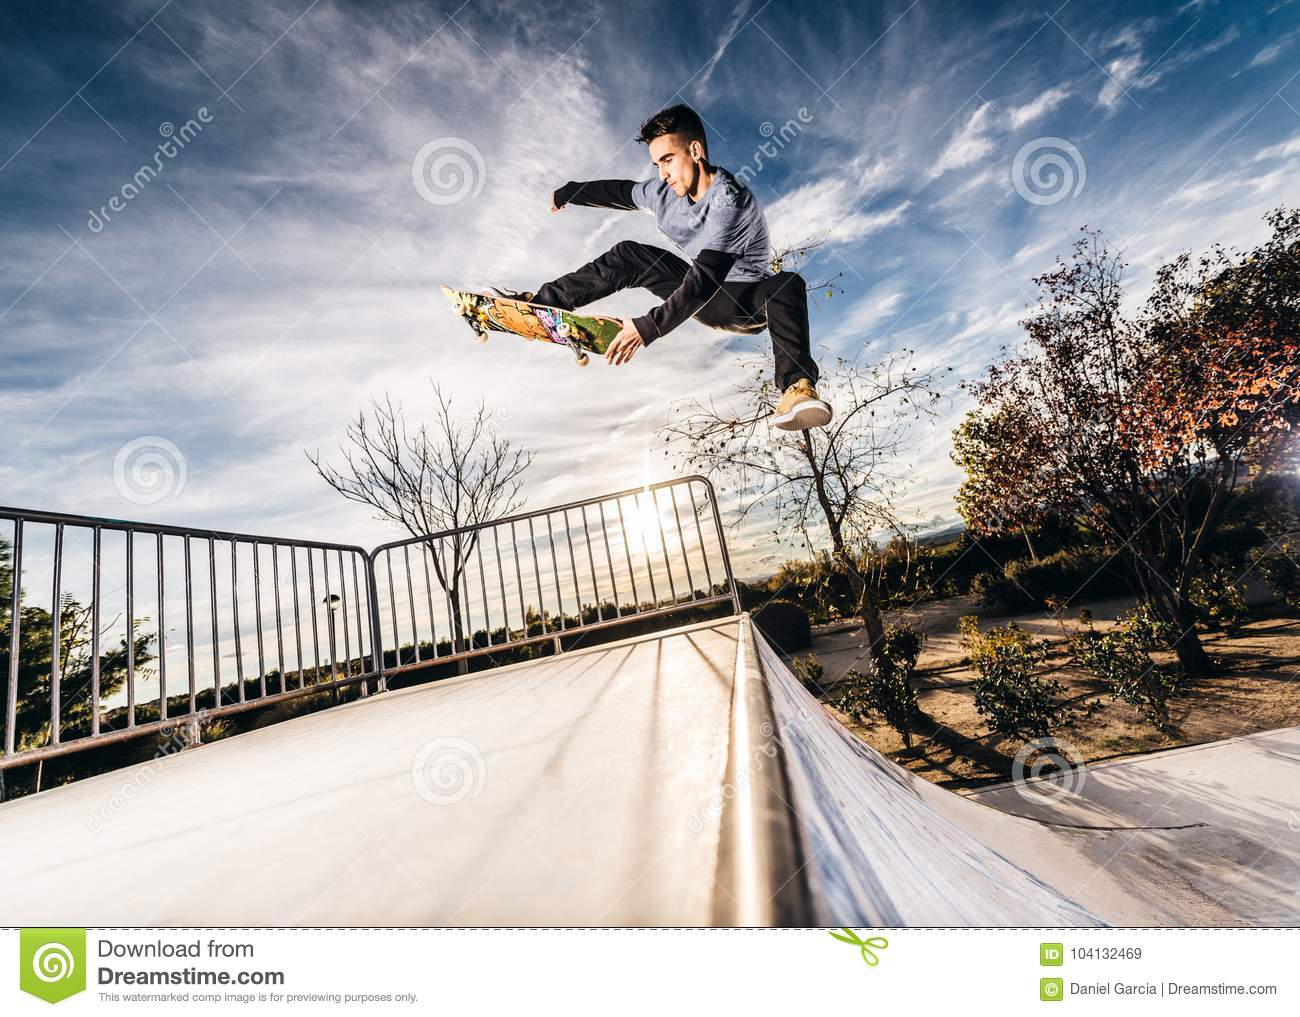 Young skater making a jump on Skatepark during sunset